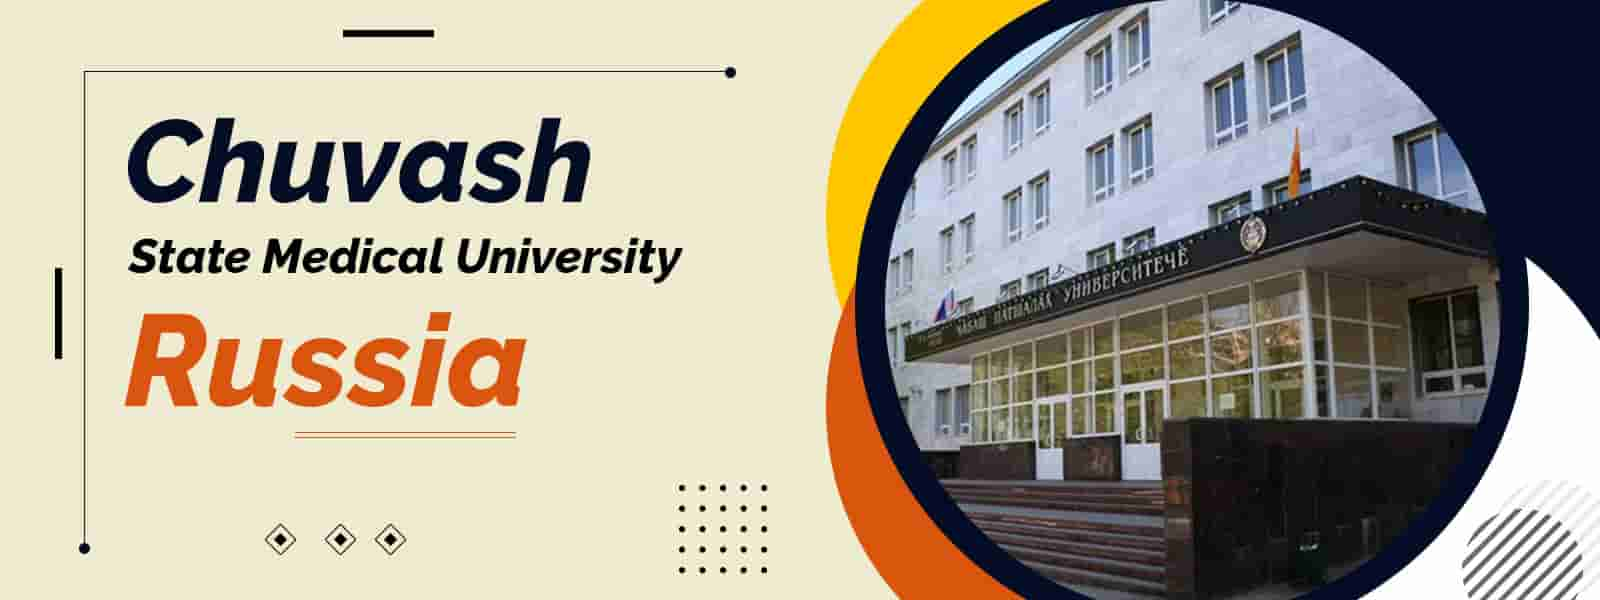 Chuvash State Medical University for MBBS Course, Fees, Ranking